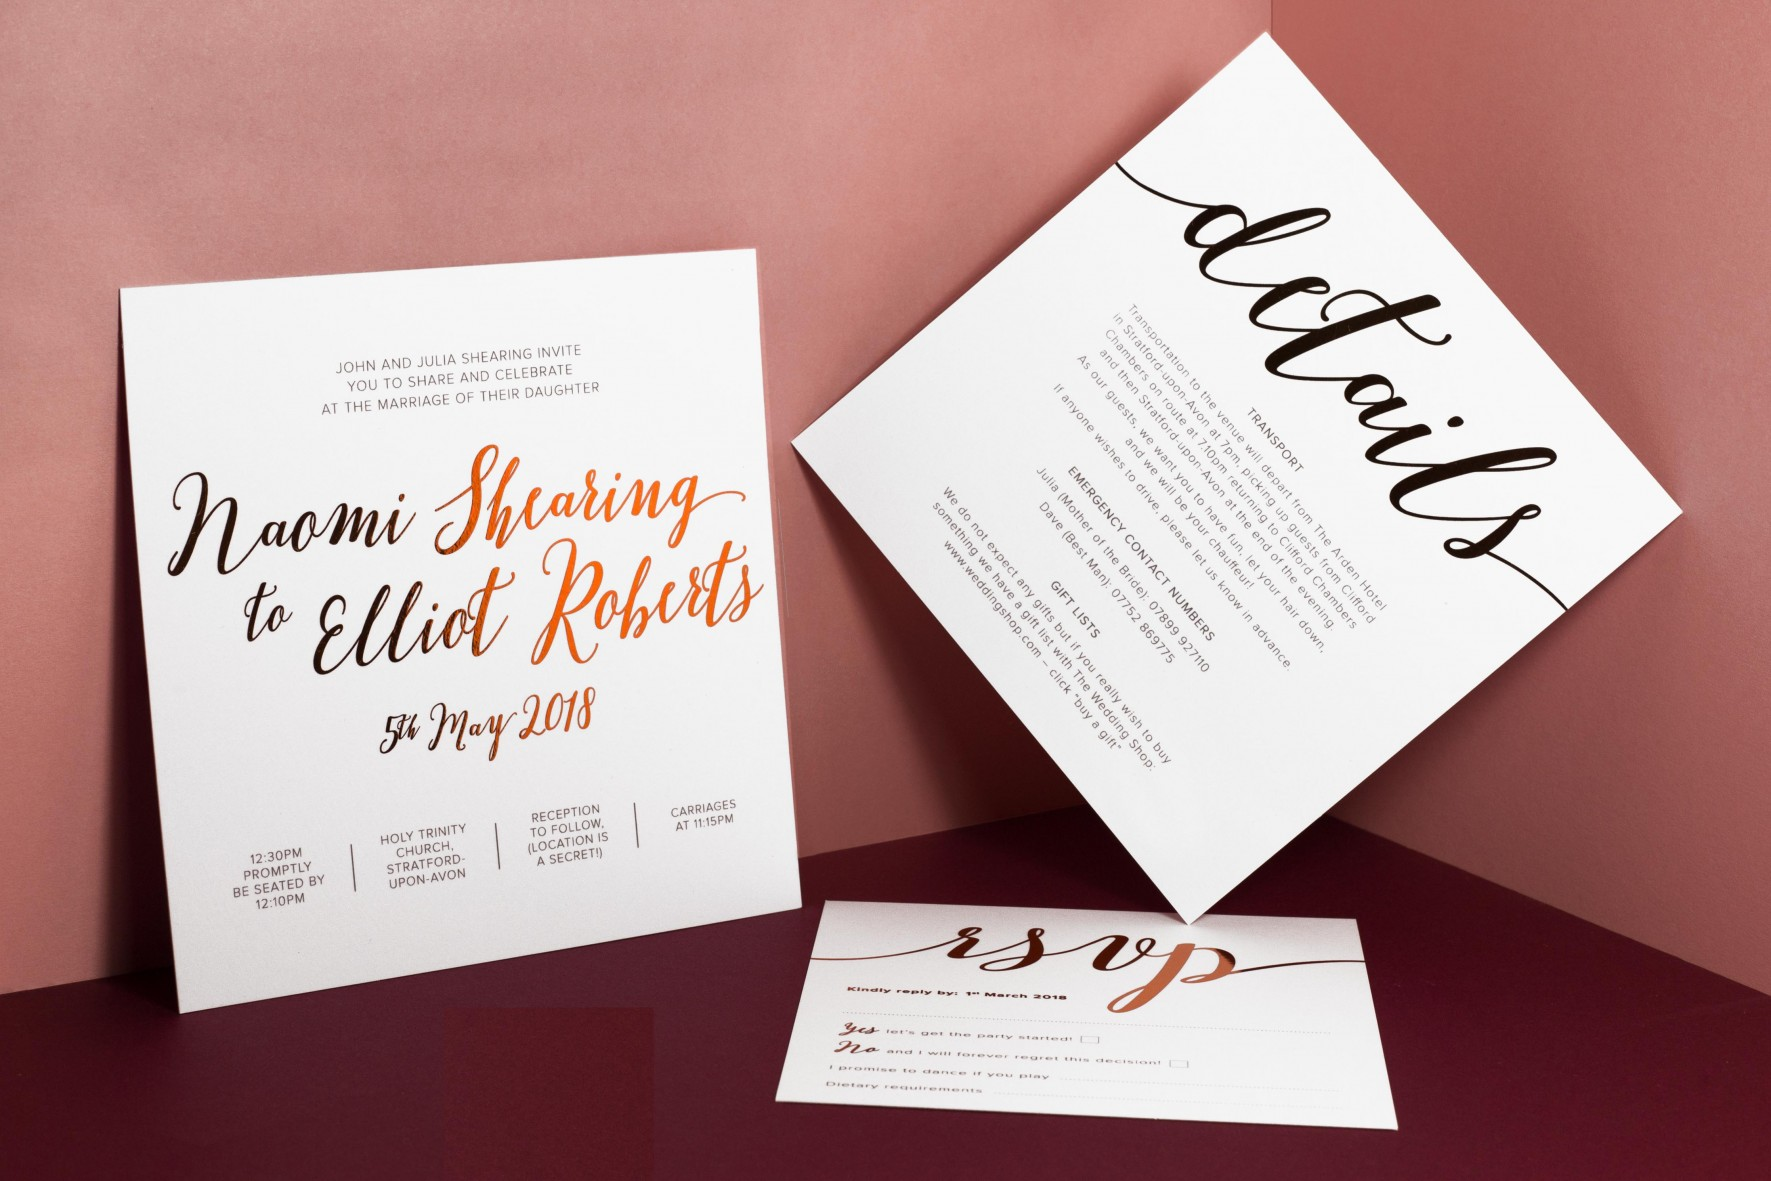 Copper foil wedding invitation , bespoke wedding stationery by www.rosepaperscissors.com